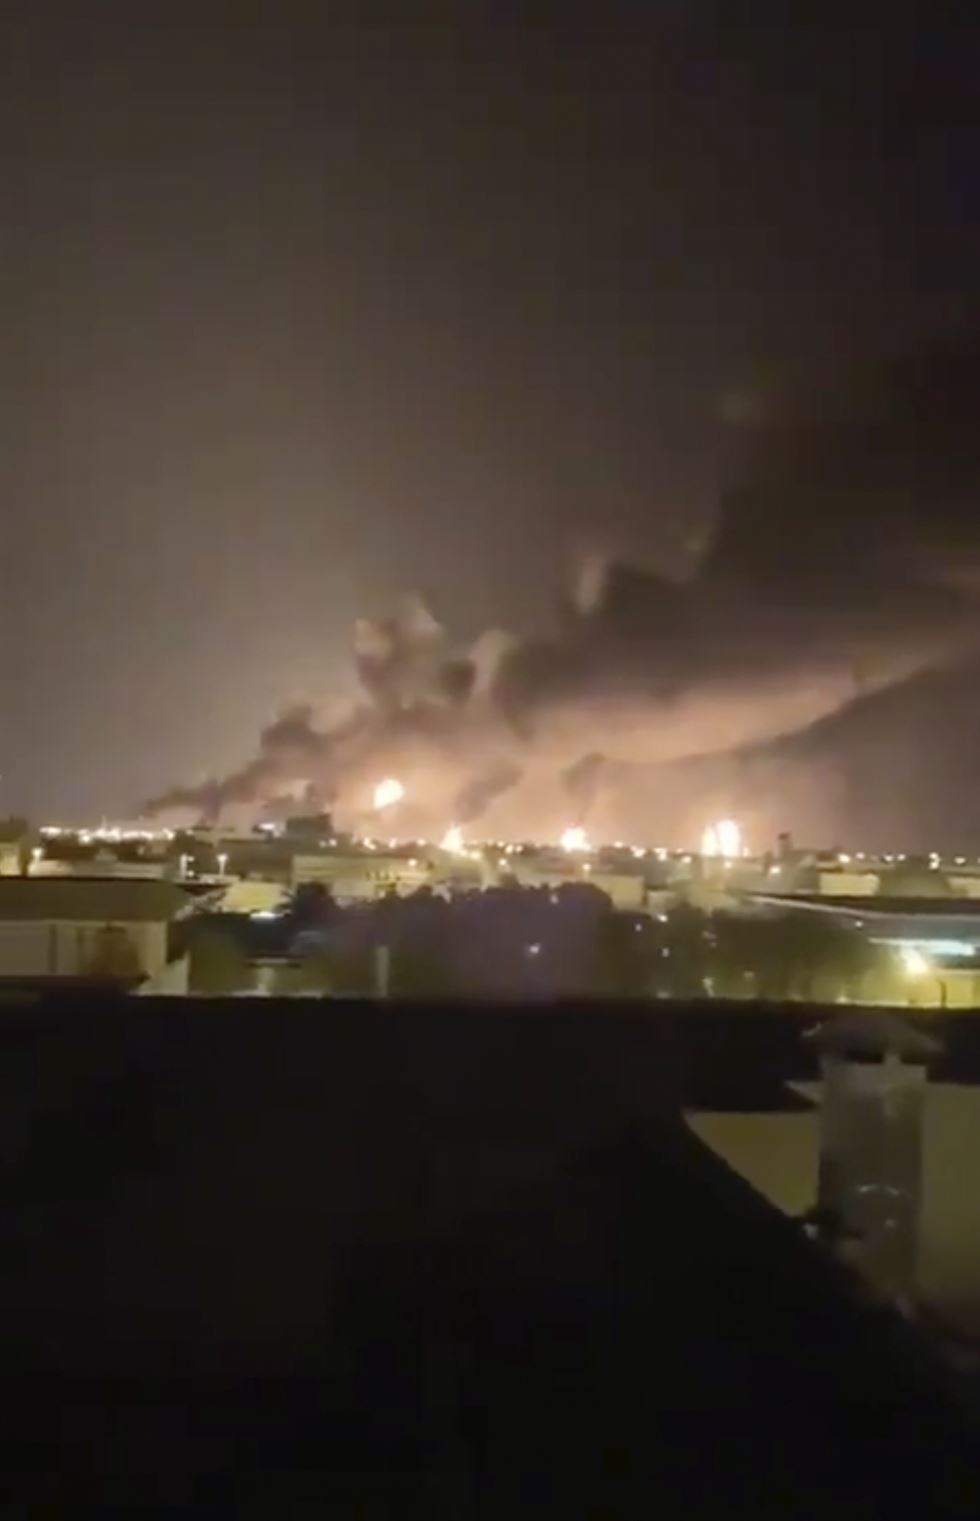 Fires burn in the distance after a drone strike by Yemen's Iran-aligned Houthi group on Saudi company Aramco's oil processing facilities, in Buqayq, Saudi Arabia September 14, 2019 in this still image taken from a social media video obtained by REUTERS